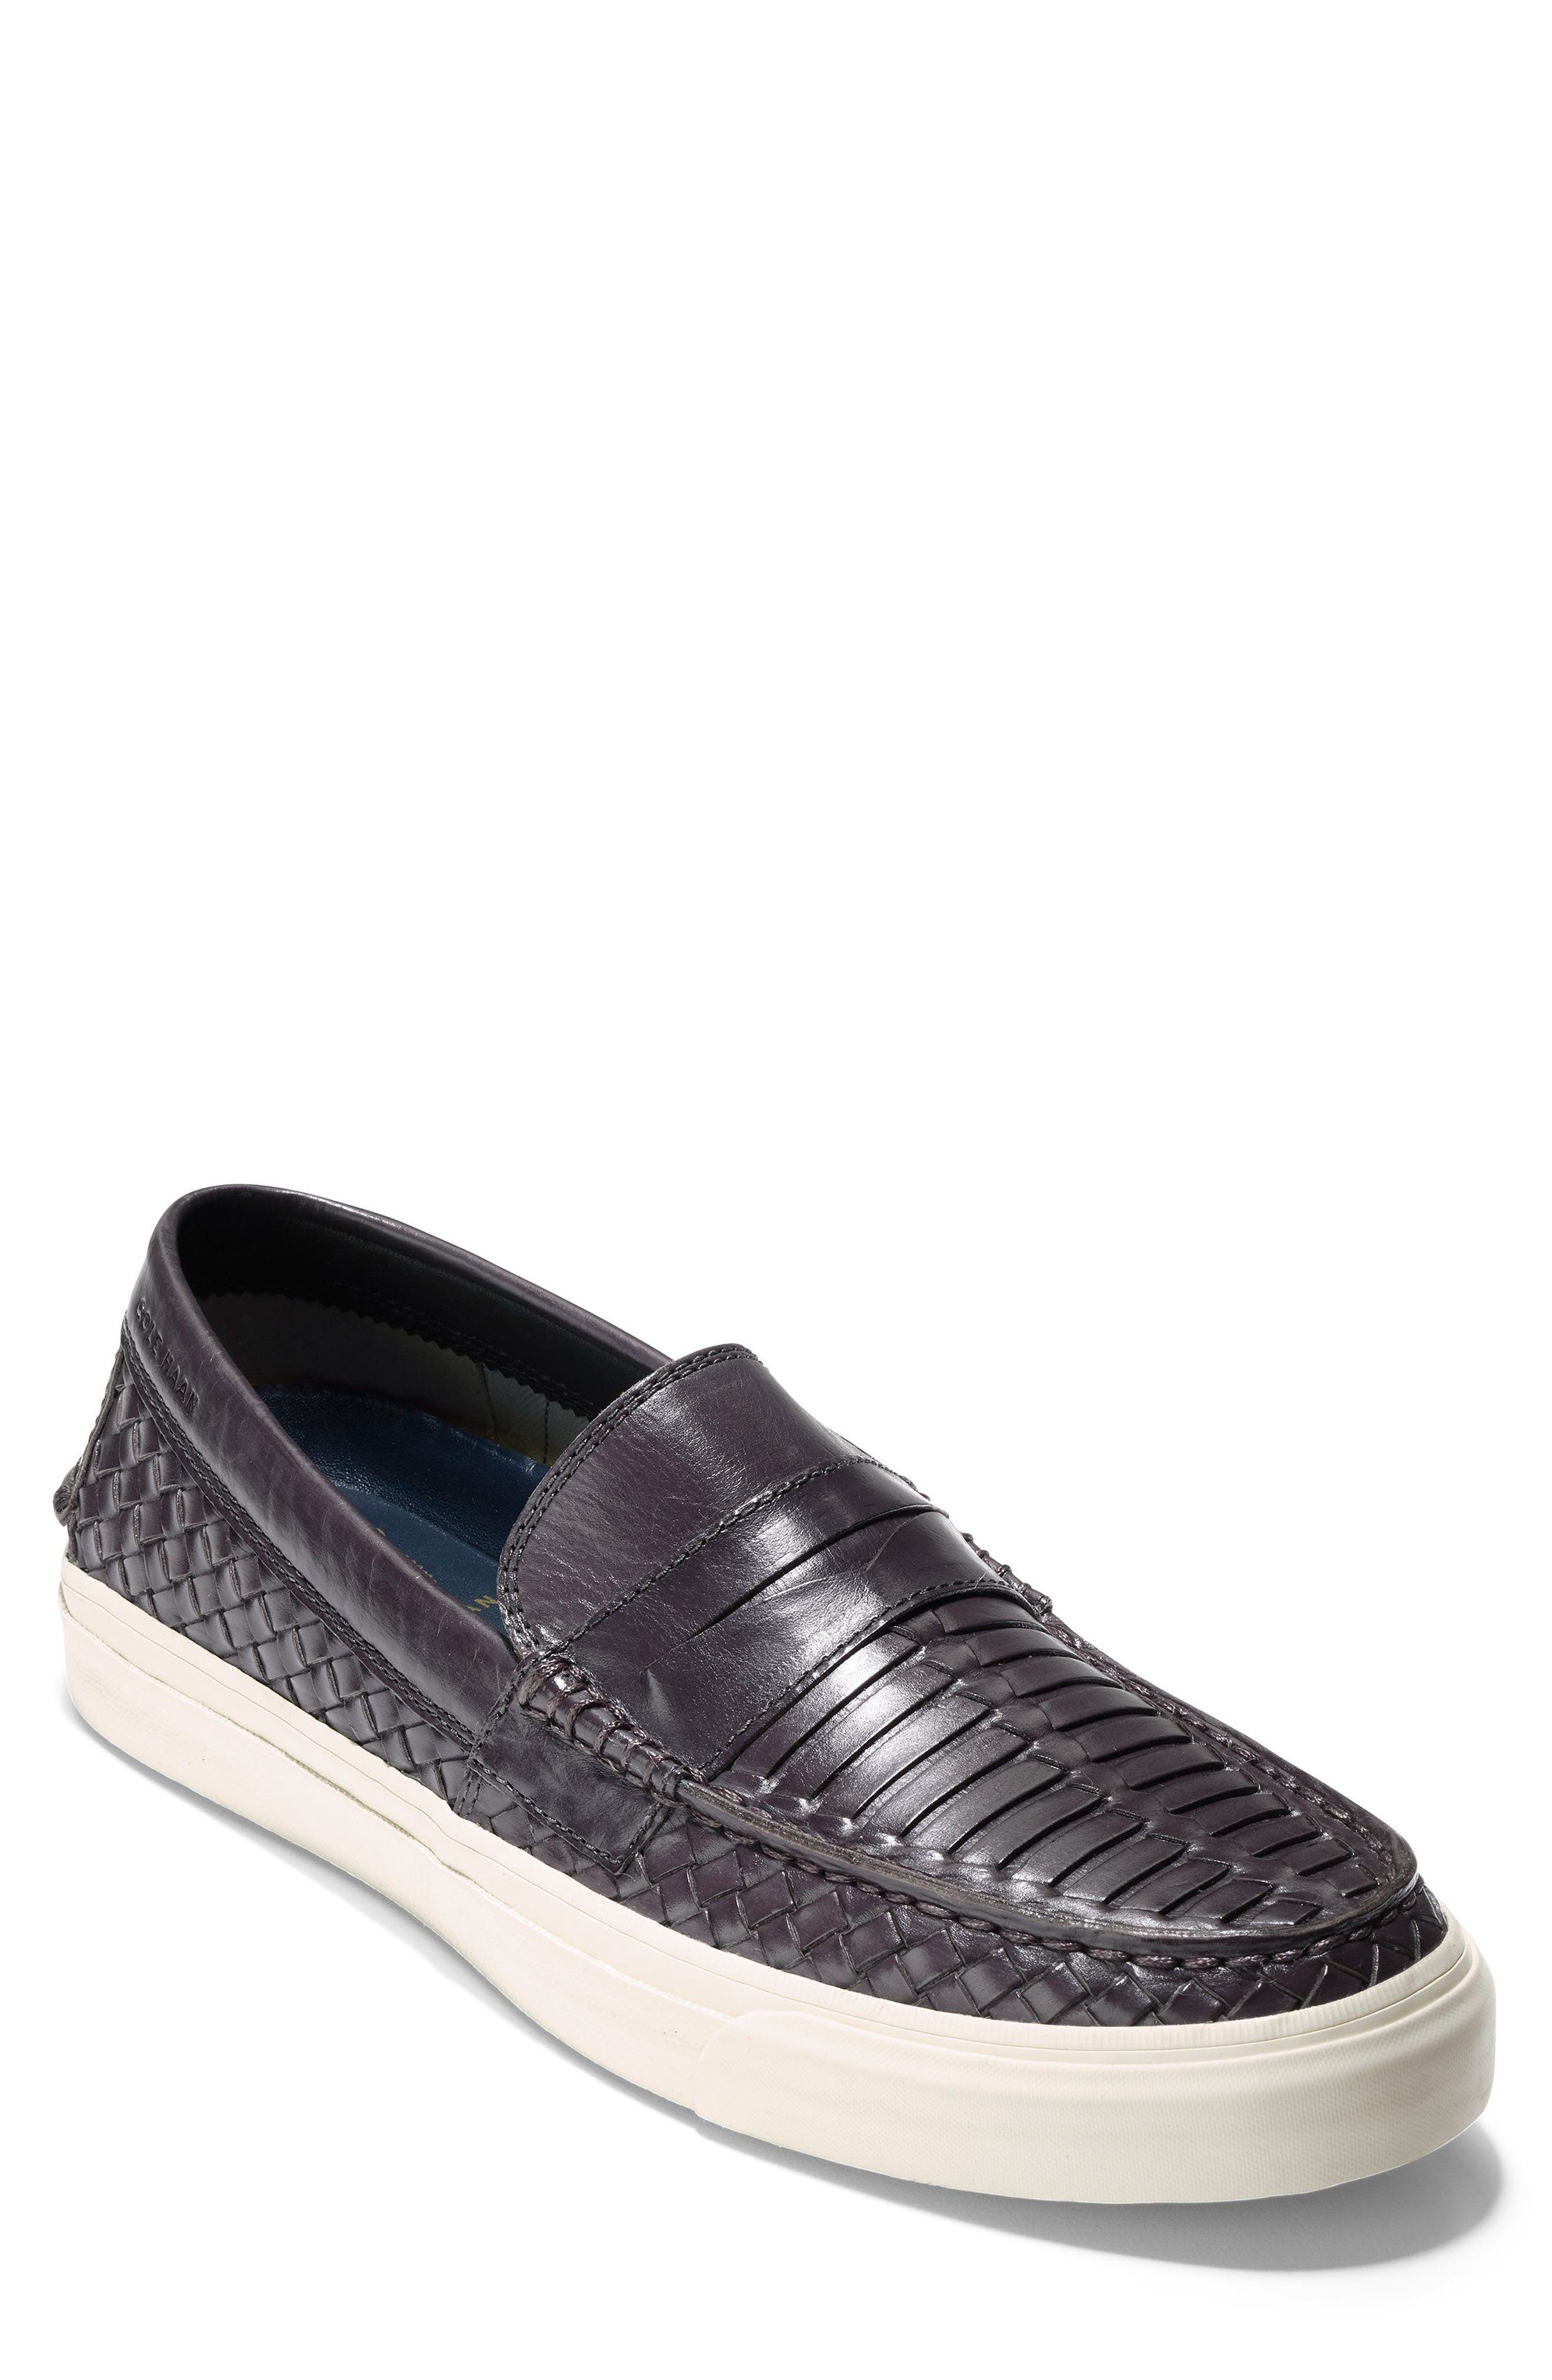 Pinch Weekend LX Huarache Loafer,                         Main,                         color, 020